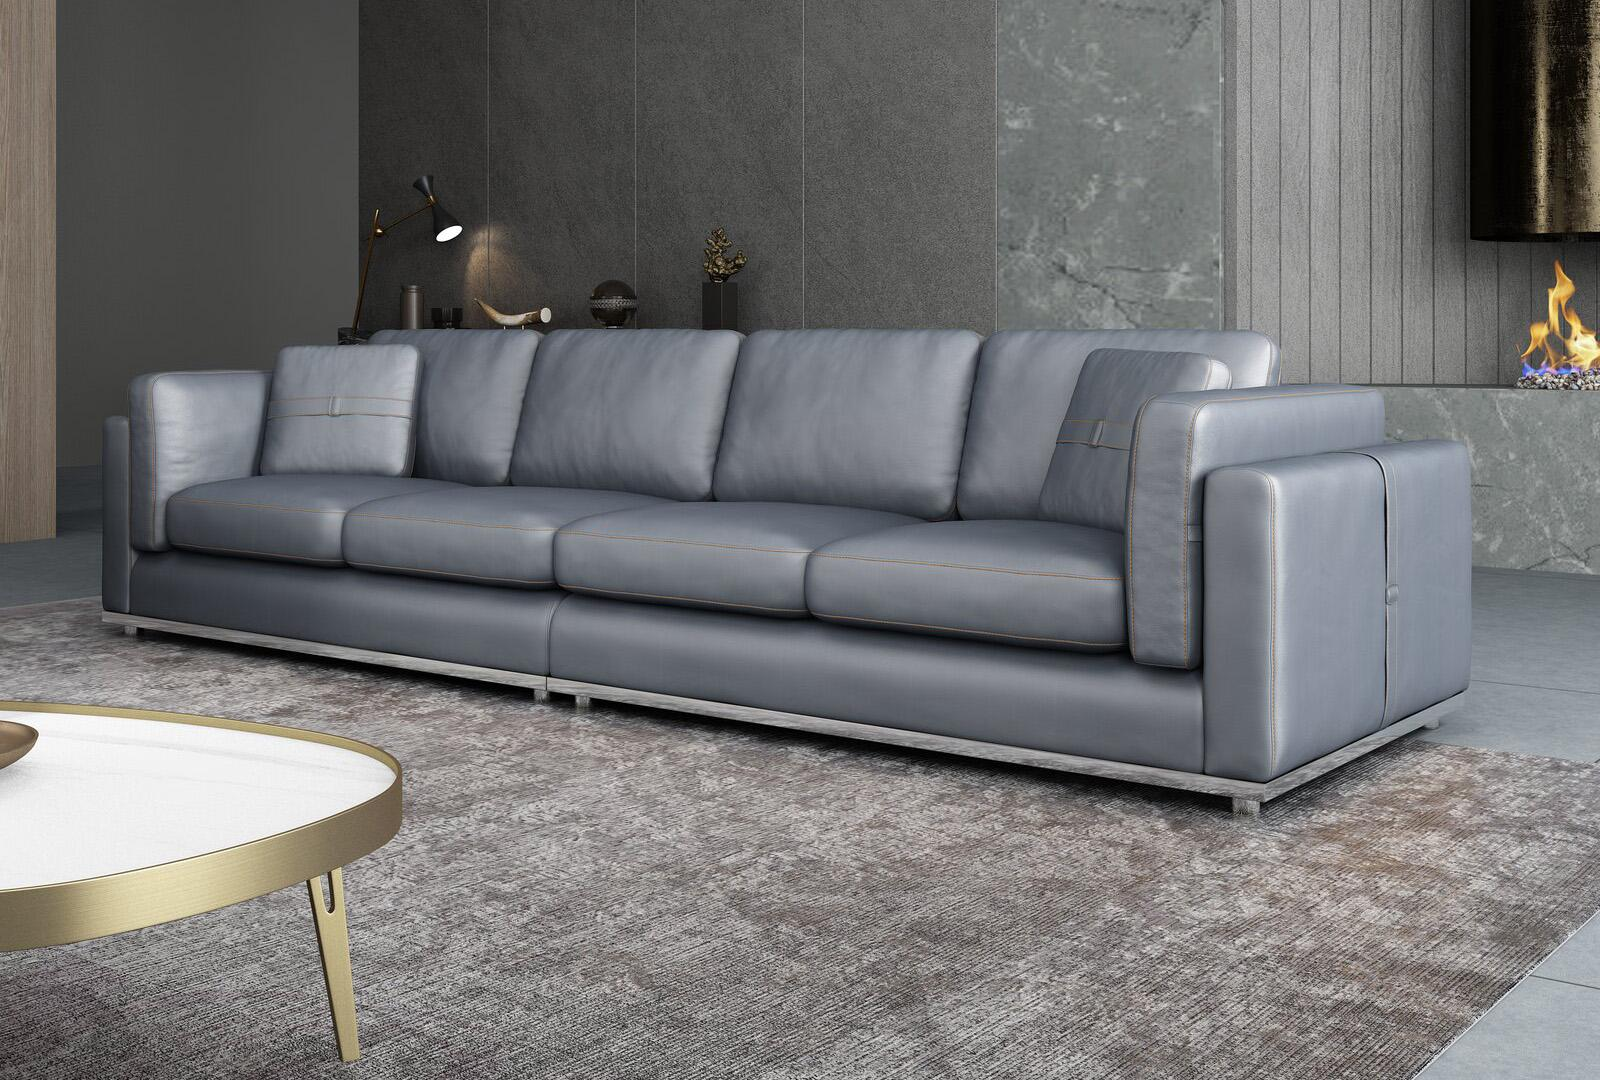 Contemporary, Modern Gray, Smoke Leather and Wood, Genuine leather, Solid Hardwood 4-seat Sofa PICASSO by European Furniture